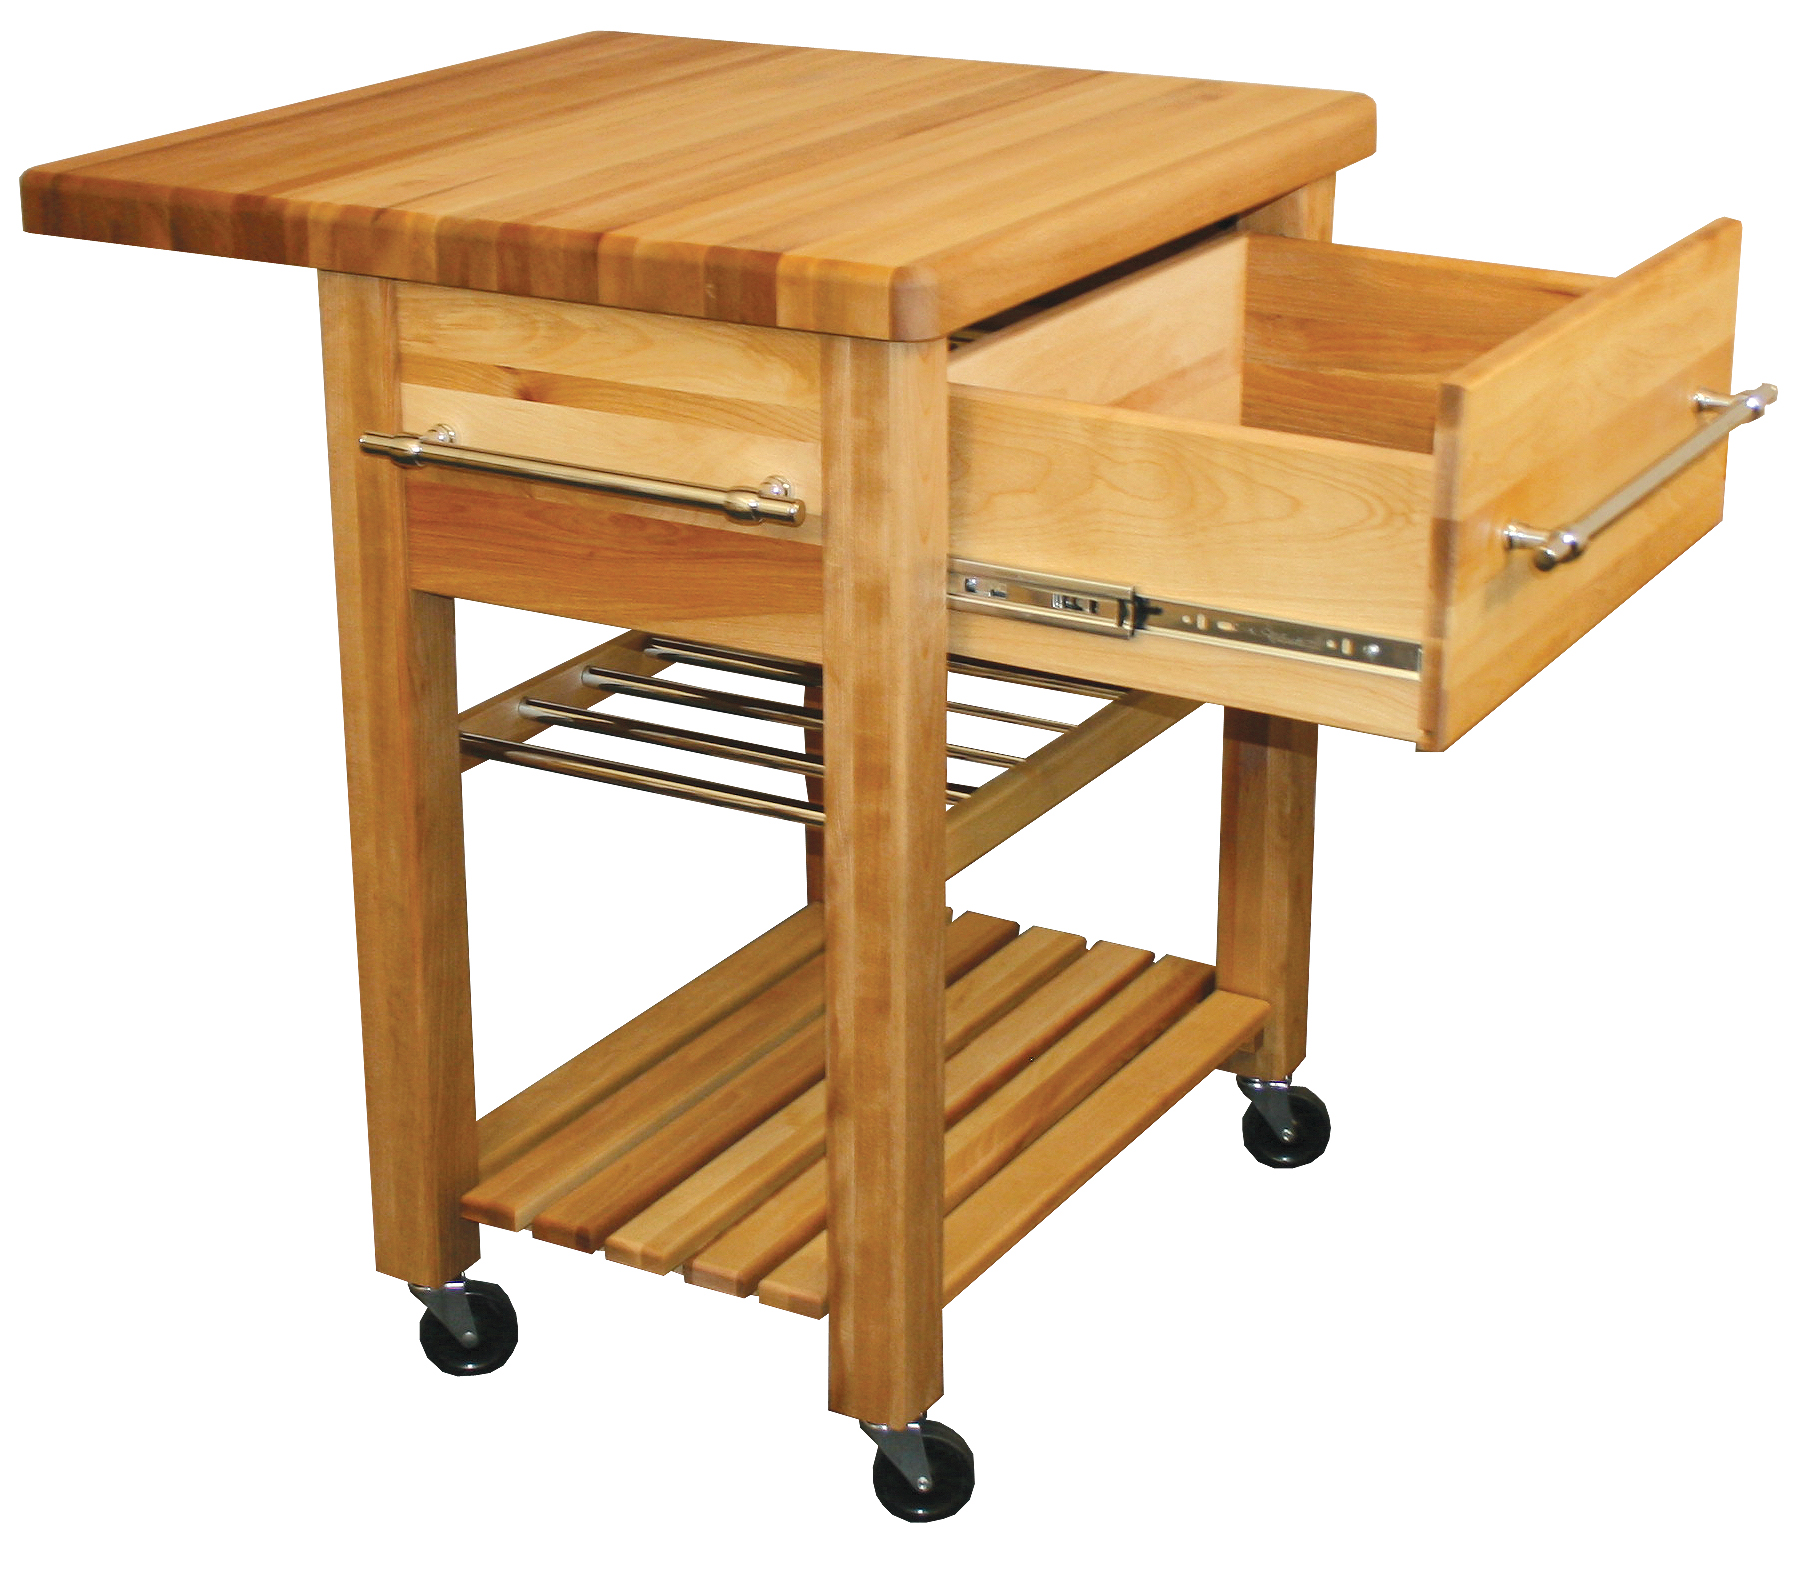 kitchen island with drop leaf clearance complete remodel butcher block workcenter wine rack